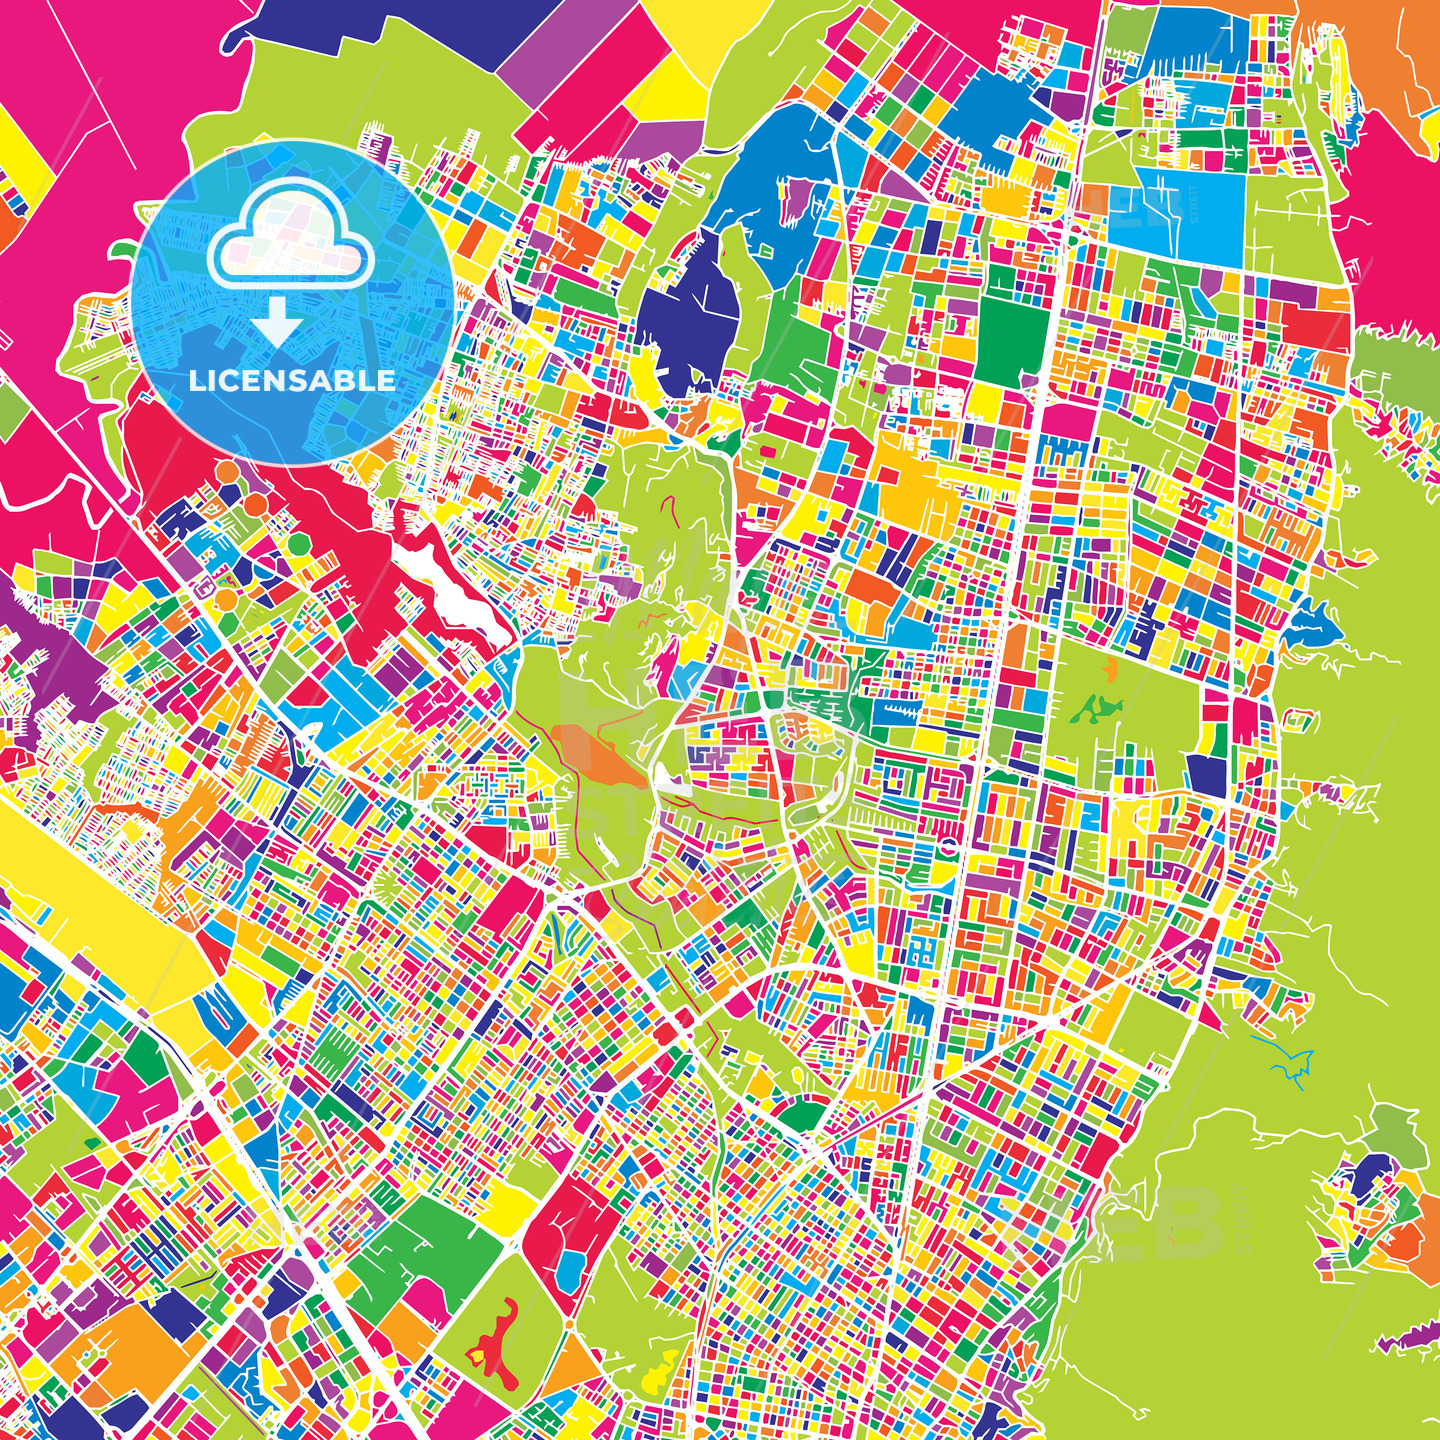 Bogotá, Colombia, colorful vector map on sao paulo brazil map, caracas map, havana map, lima on map, san pedro sula map, boston map, mexico city map, dhaka map, buenos aires map, colombia map, cartagena map, quito map, chicago map, bratislava map, paramaribo map, leticia map, santiago map, asuncion map, rio de janeiro map, brasillia map,